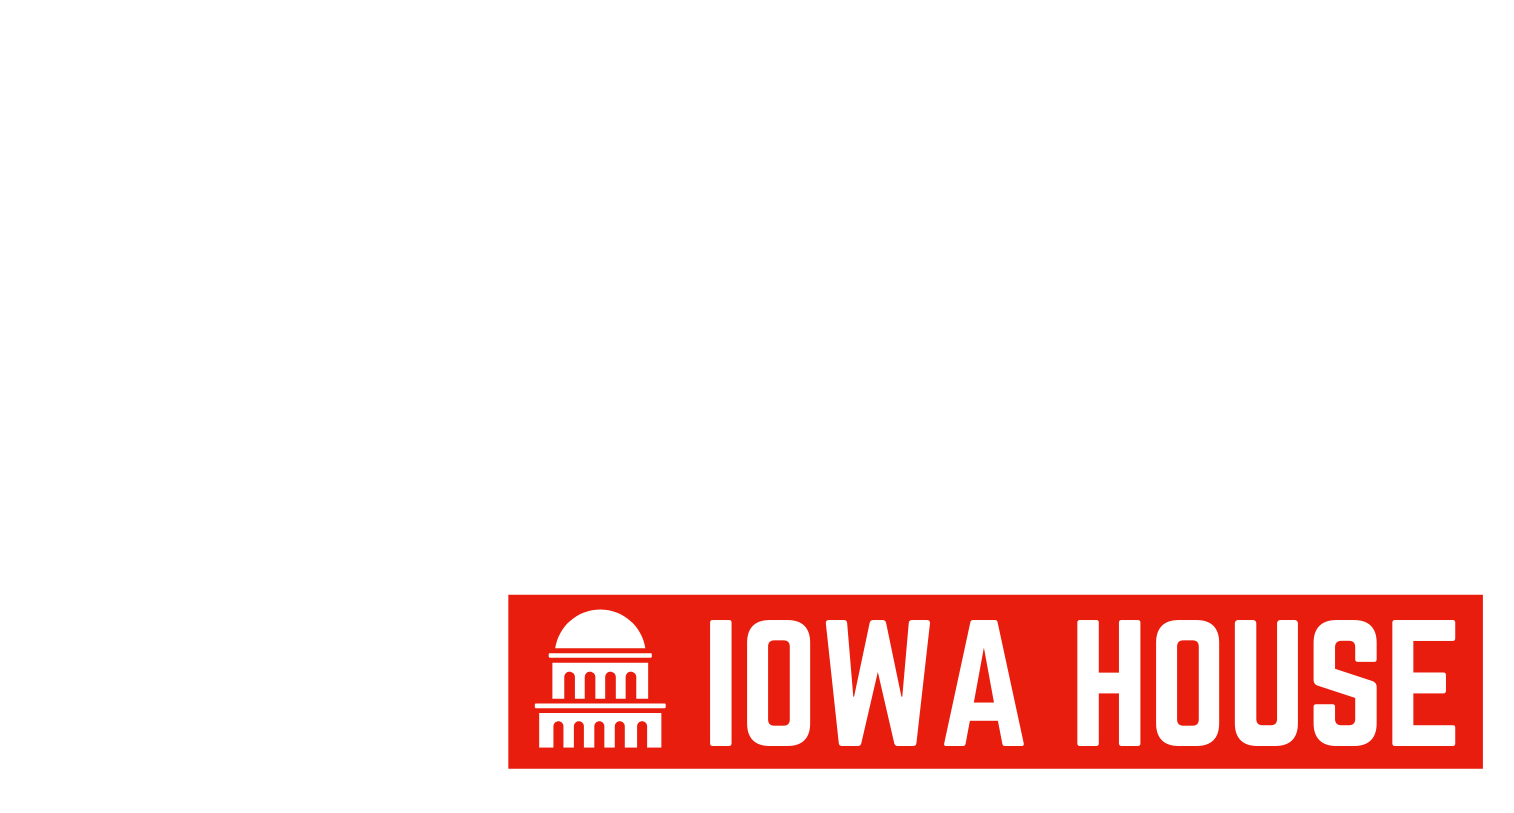 Ryan Howard for Iowa